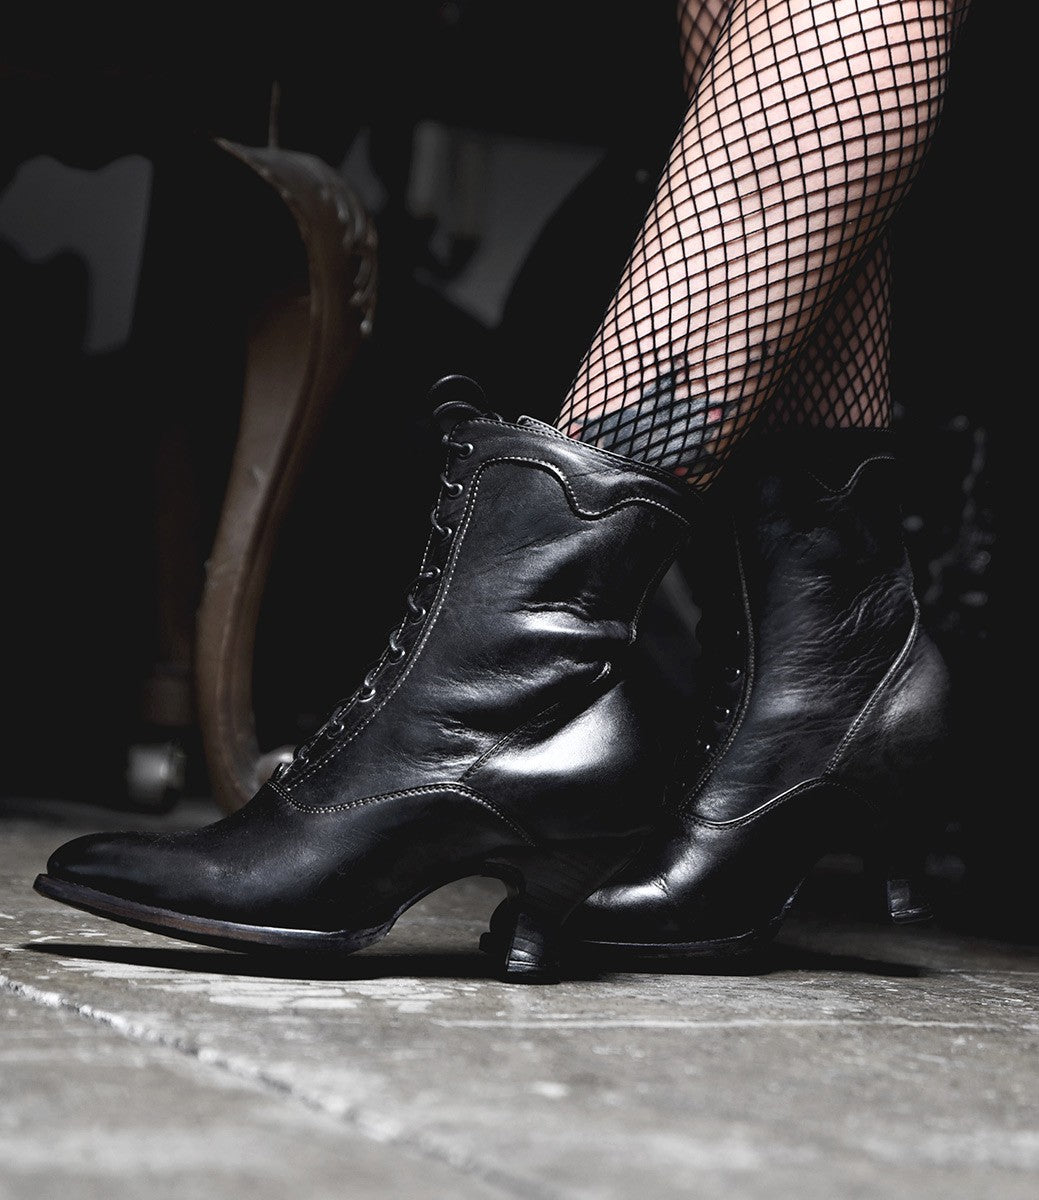 Edwardian Shoes & Boots | Titanic Shoes Victorian Style Leather Ankle Boots in Black Rustic $235.00 AT vintagedancer.com